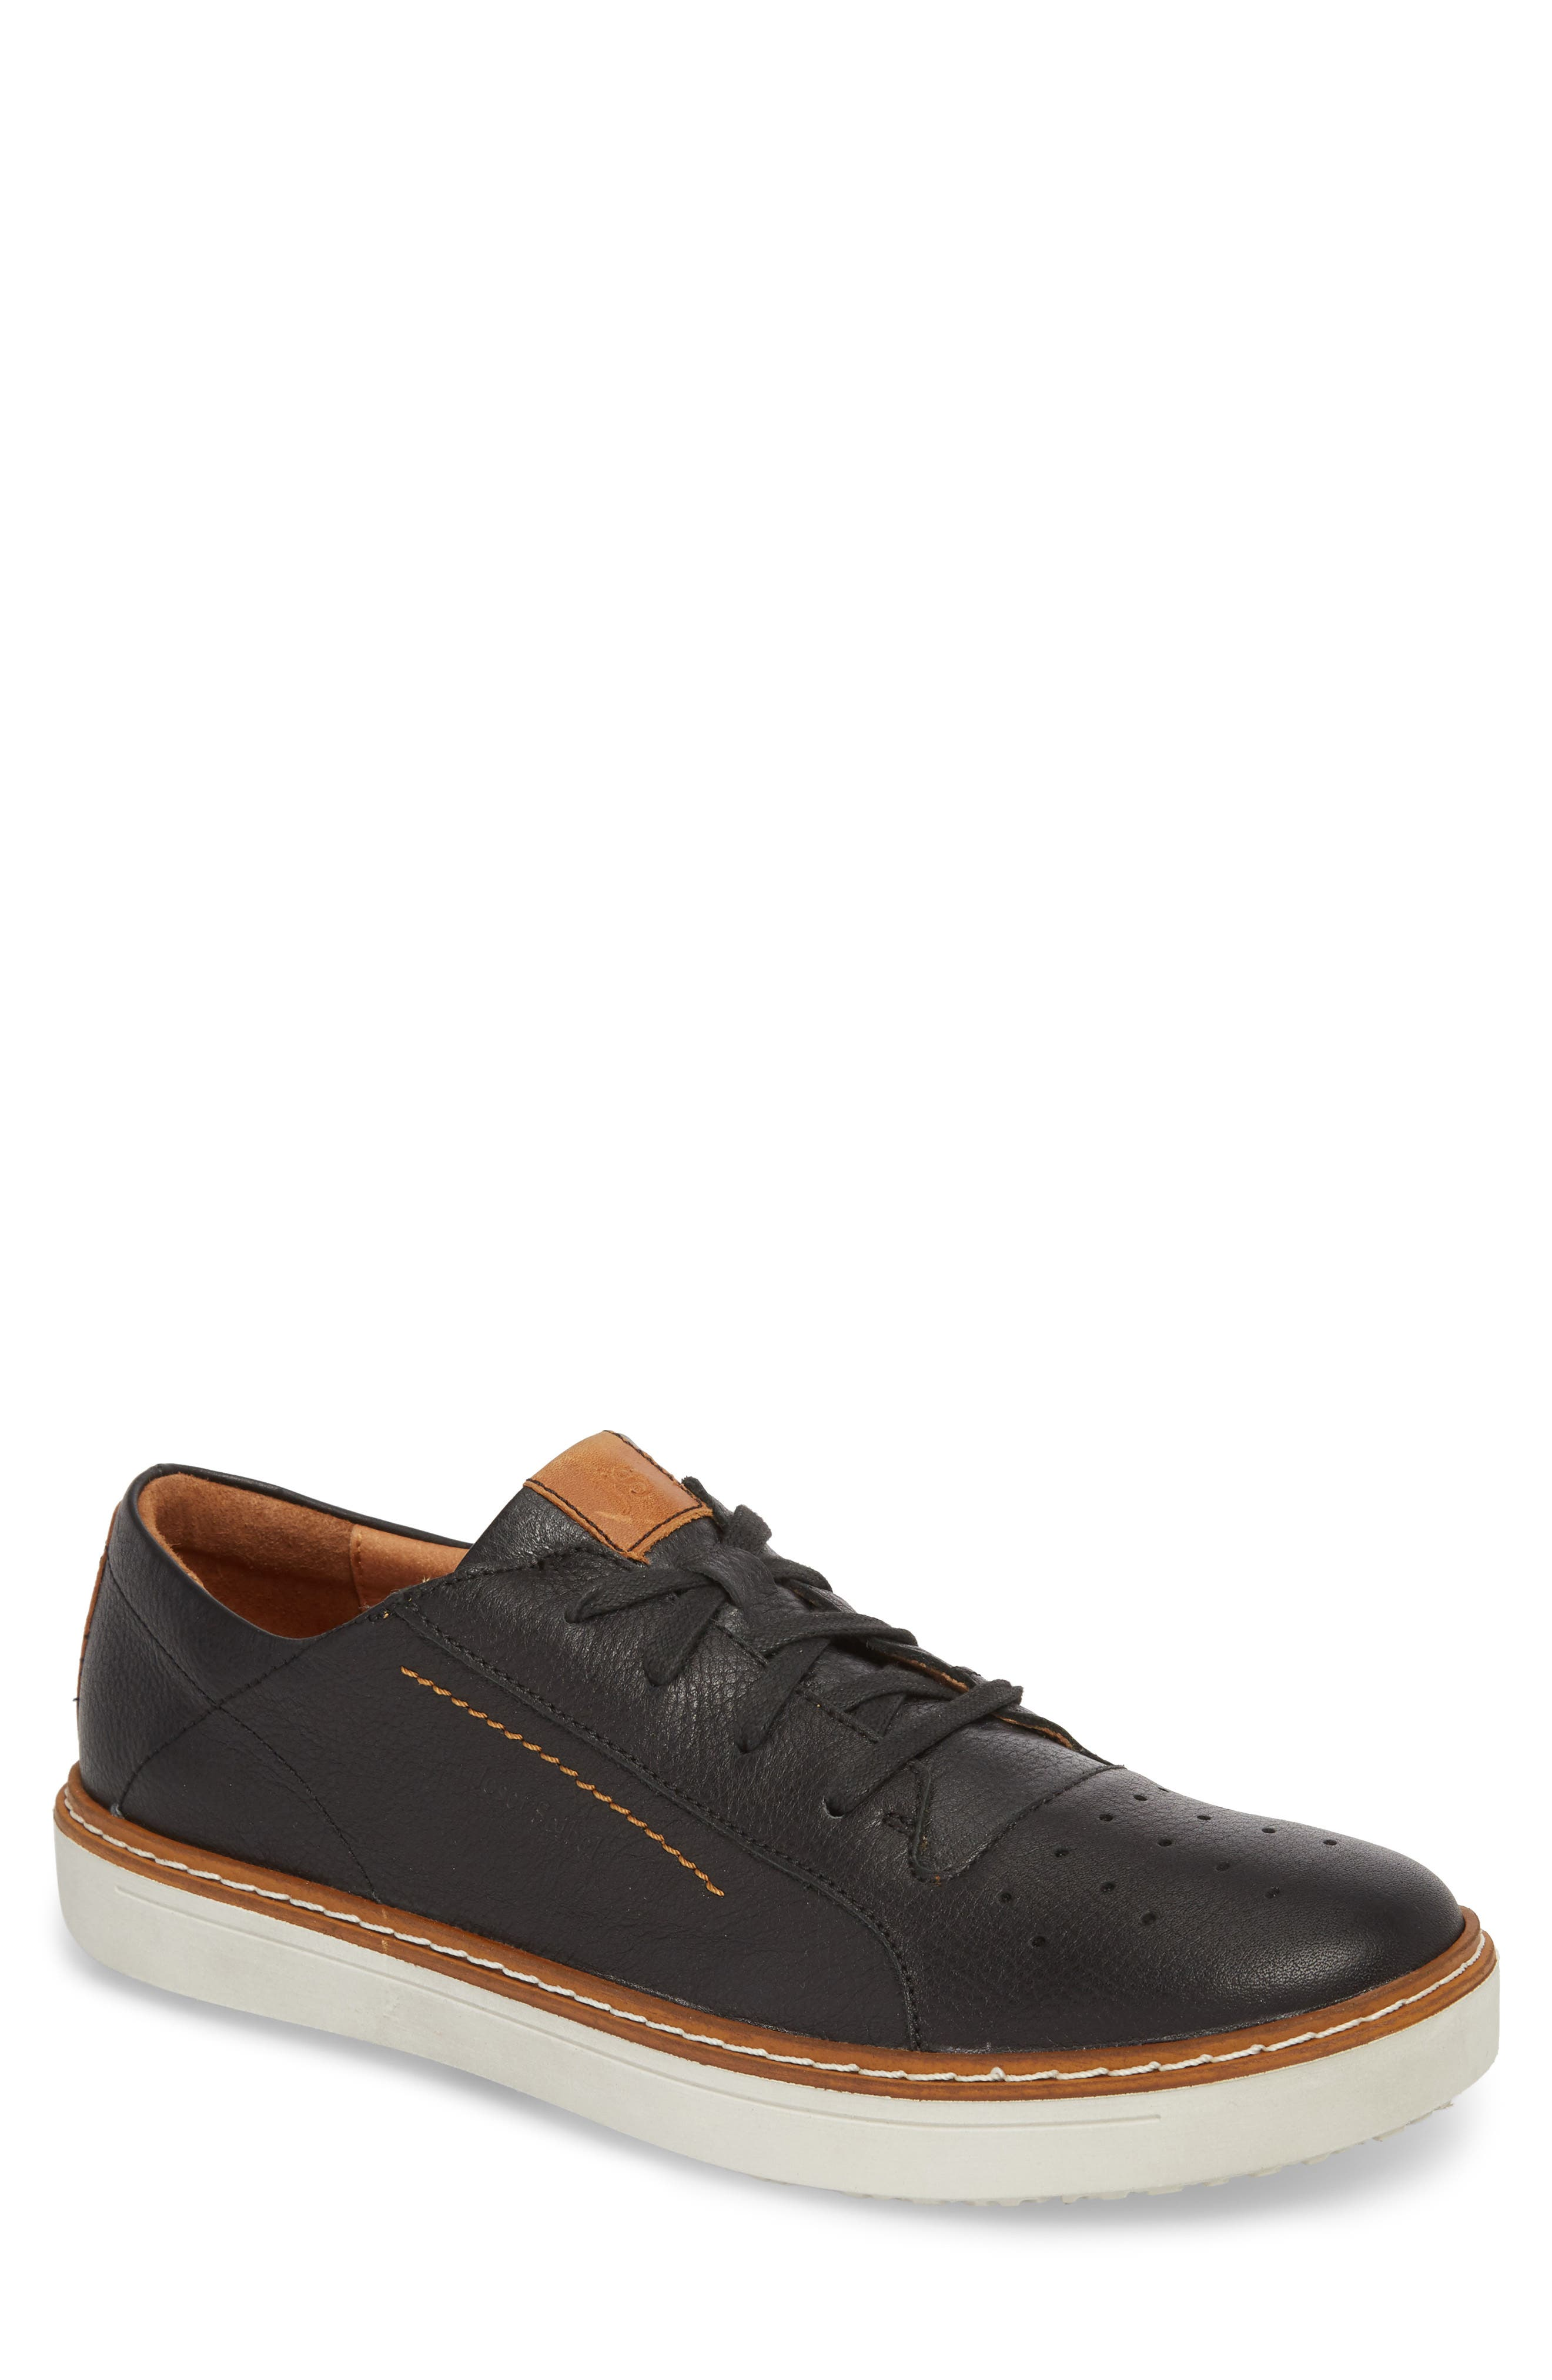 Quentin 03 Low Top Sneaker,                             Main thumbnail 1, color,                             BLACK KOMBI LEATHER